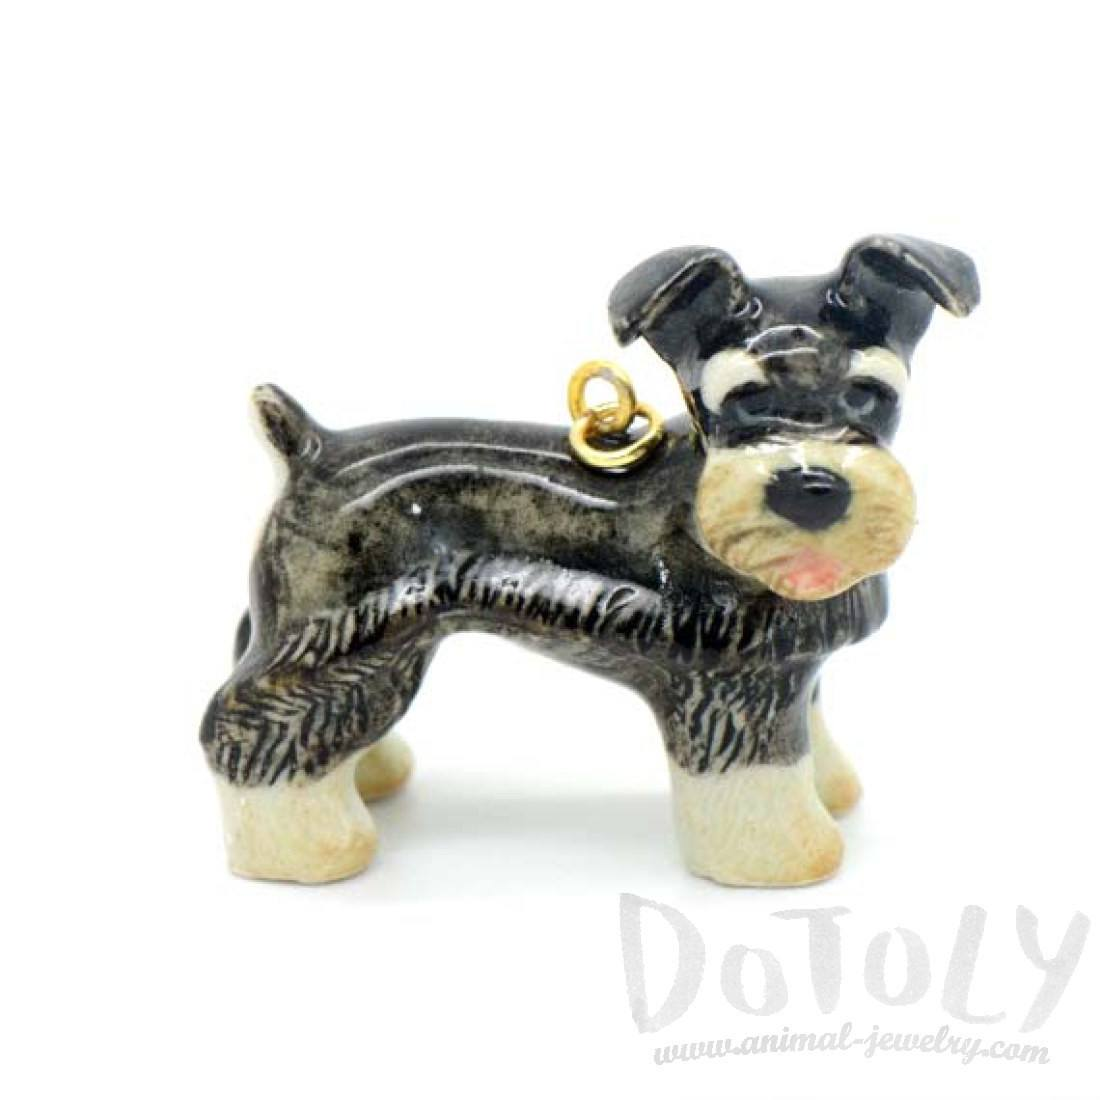 Schnauzer Puppy Dog Porcelain Handmade Ceramic Animal Pendant Necklace